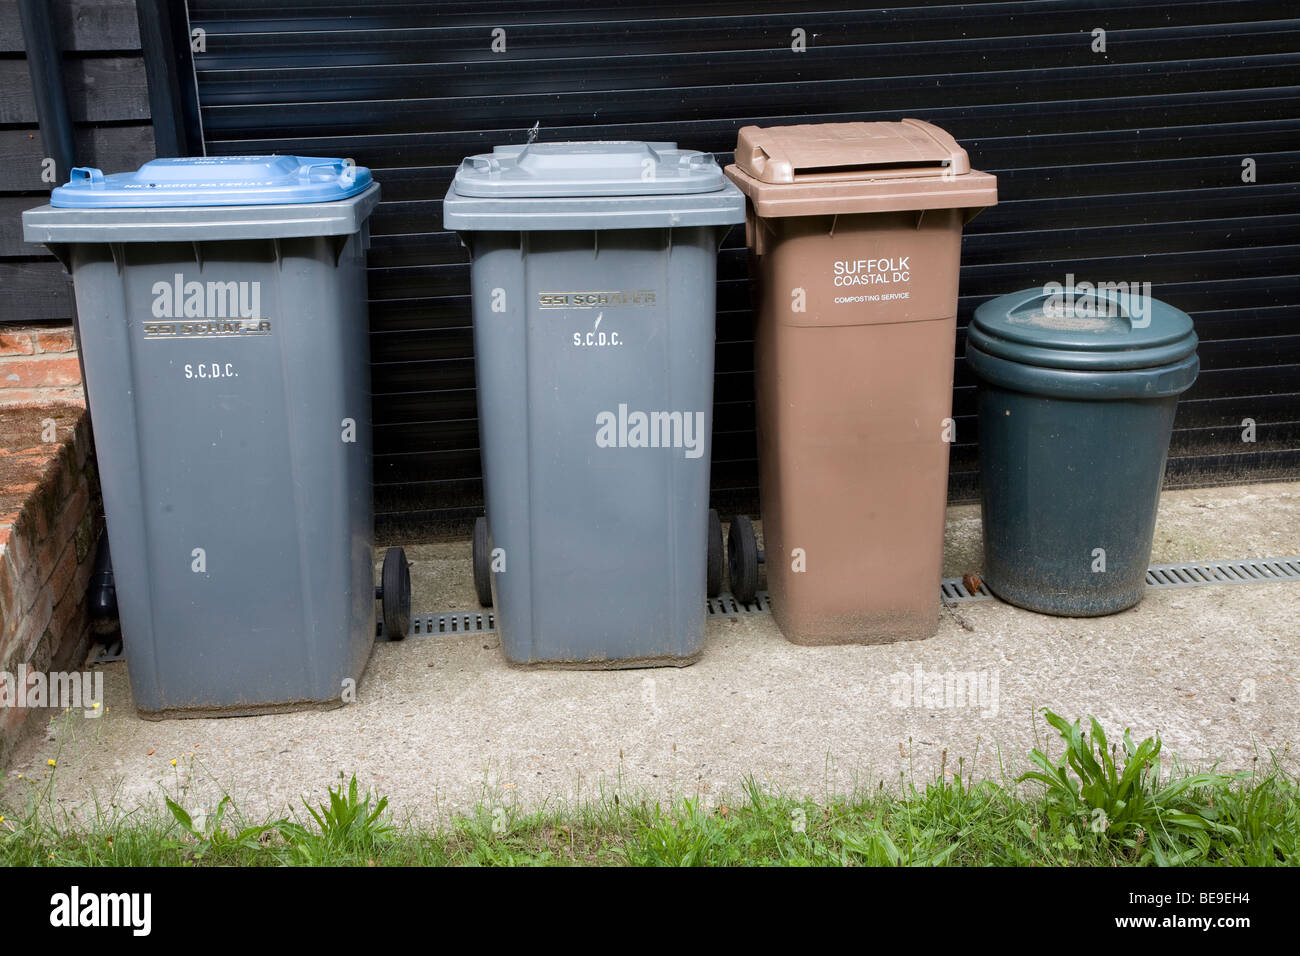 Recycling bins for sorted refuse Stock Photo